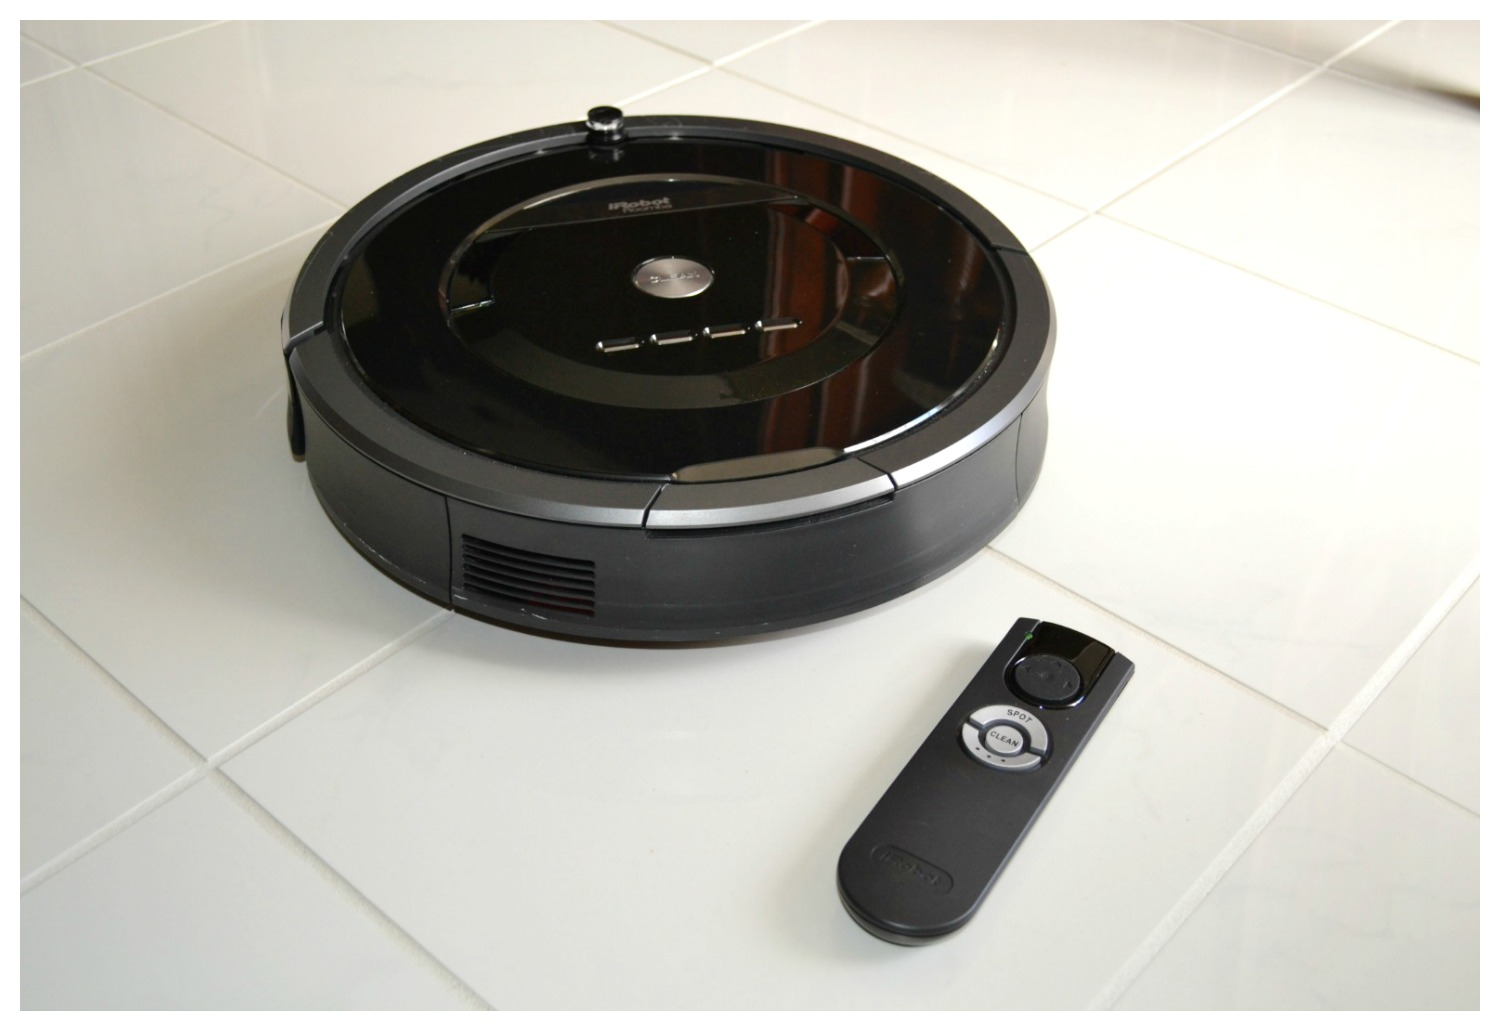 Product review of iRobot Roomba 880.